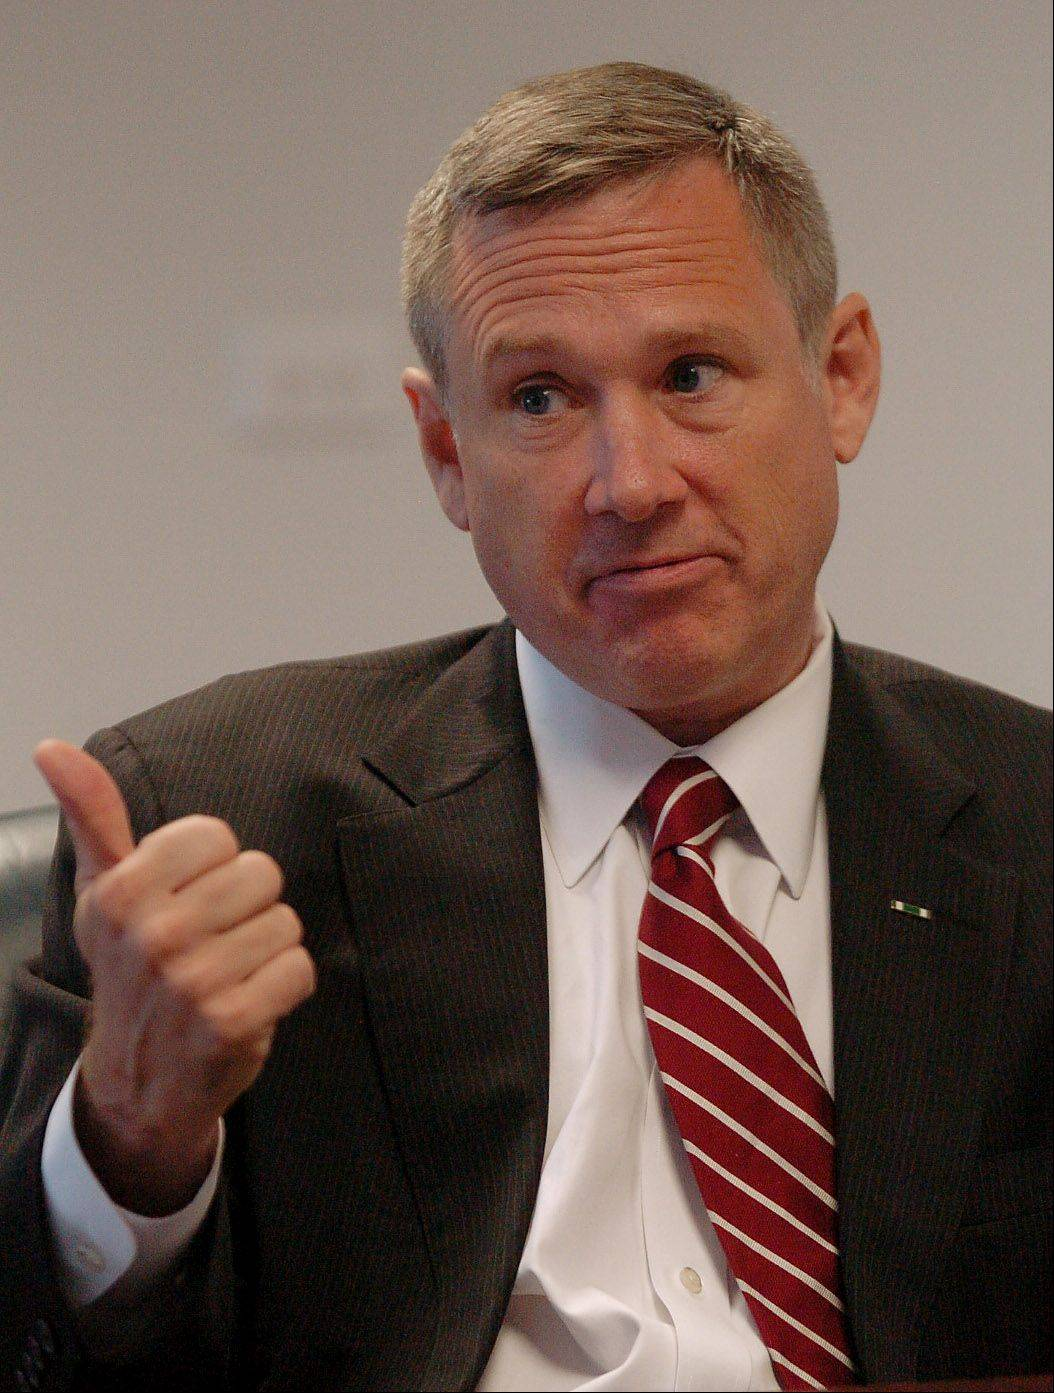 Bob Chwedyk/bchwedyk@dailyherald.com Sen. Mark Kirk is calling for Congress to return to Washington D.C. to address the nation's debt issue. He met Wednesday with the Daily Herald editorial board.